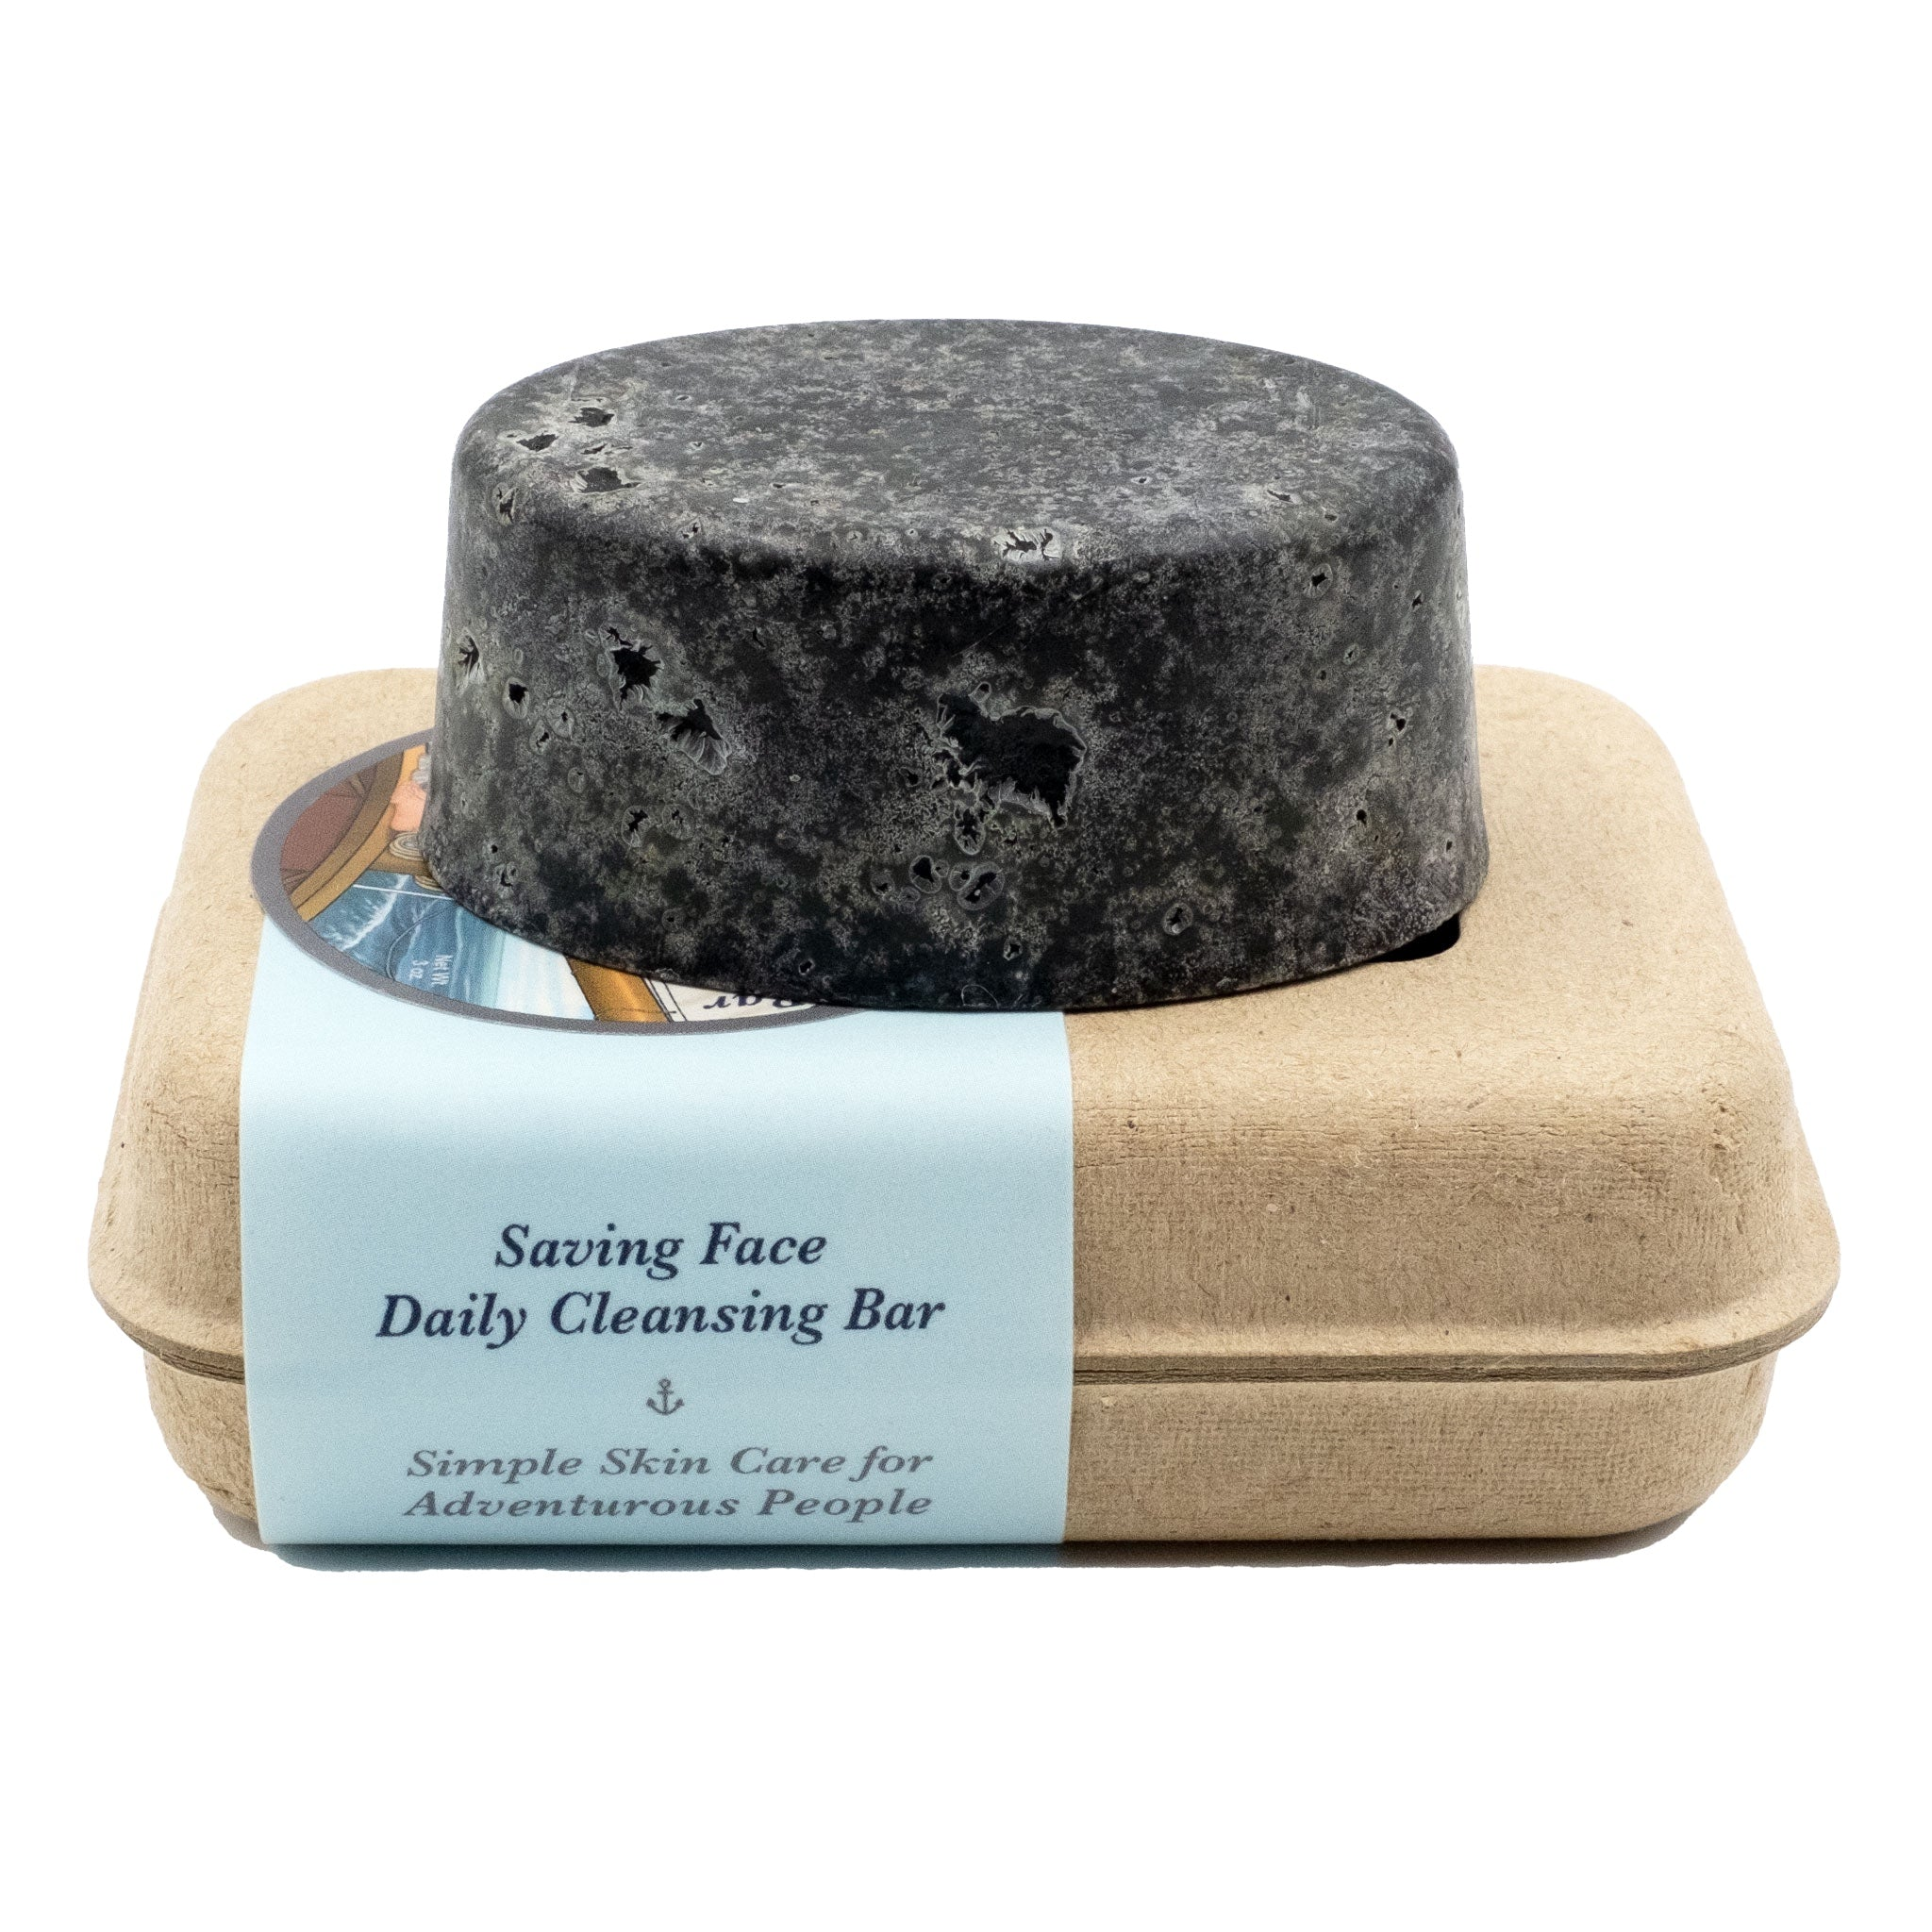 Handcrafted Organic Anti-Acne & Sensitive Skin Facial Charcoal Bar Soap Sitting on top of a box